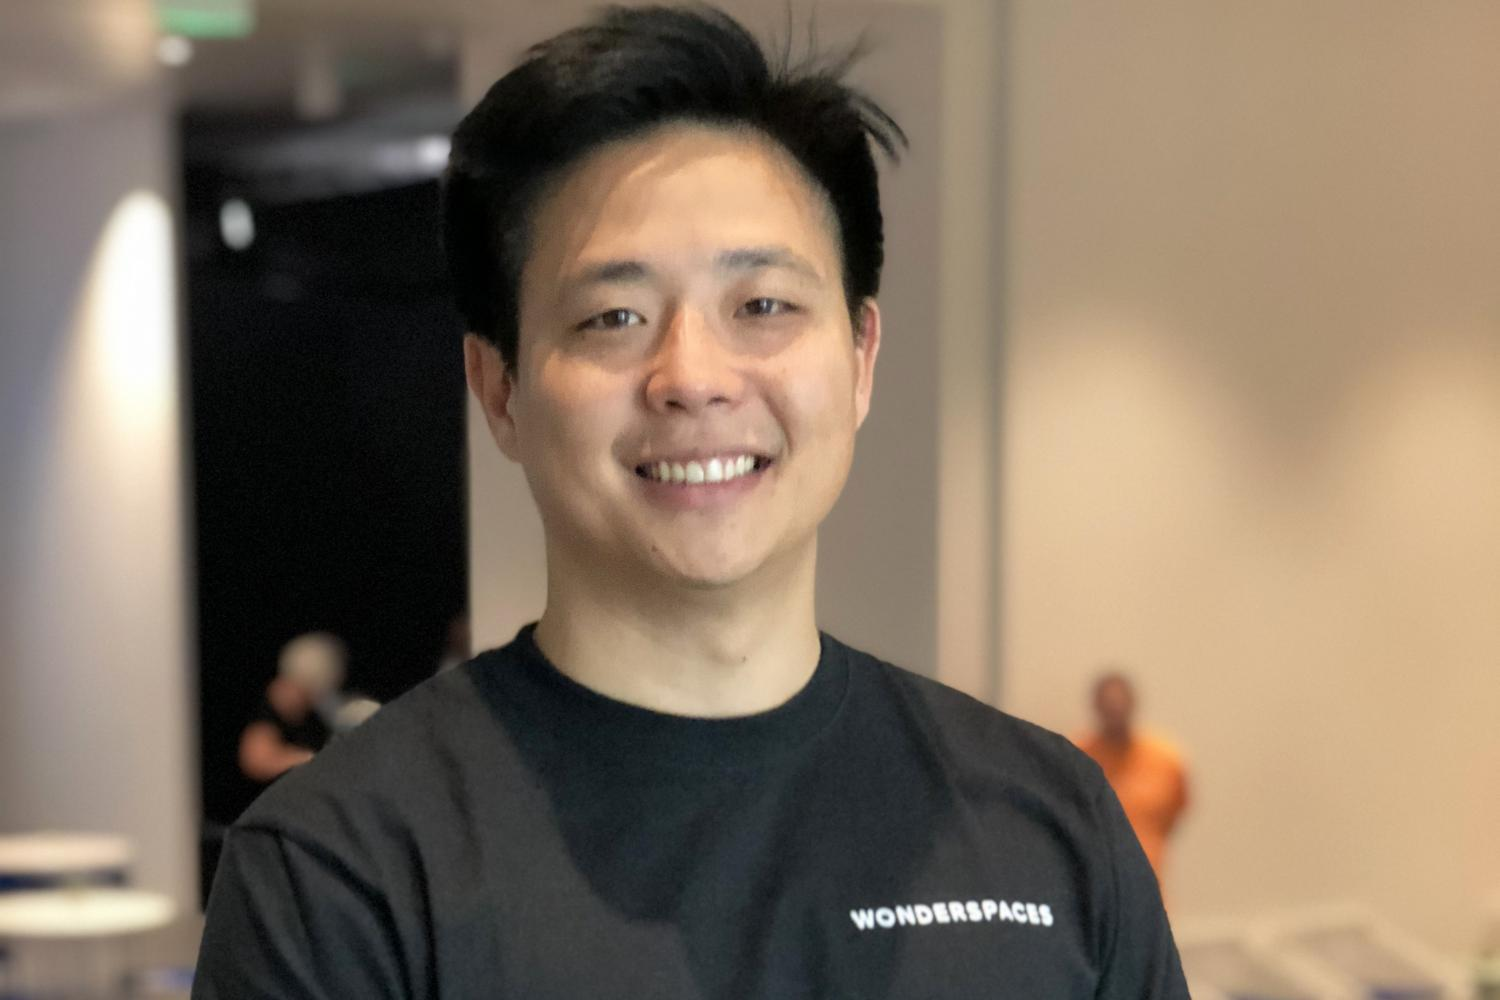 Jason Shin, president of Wonderspaces